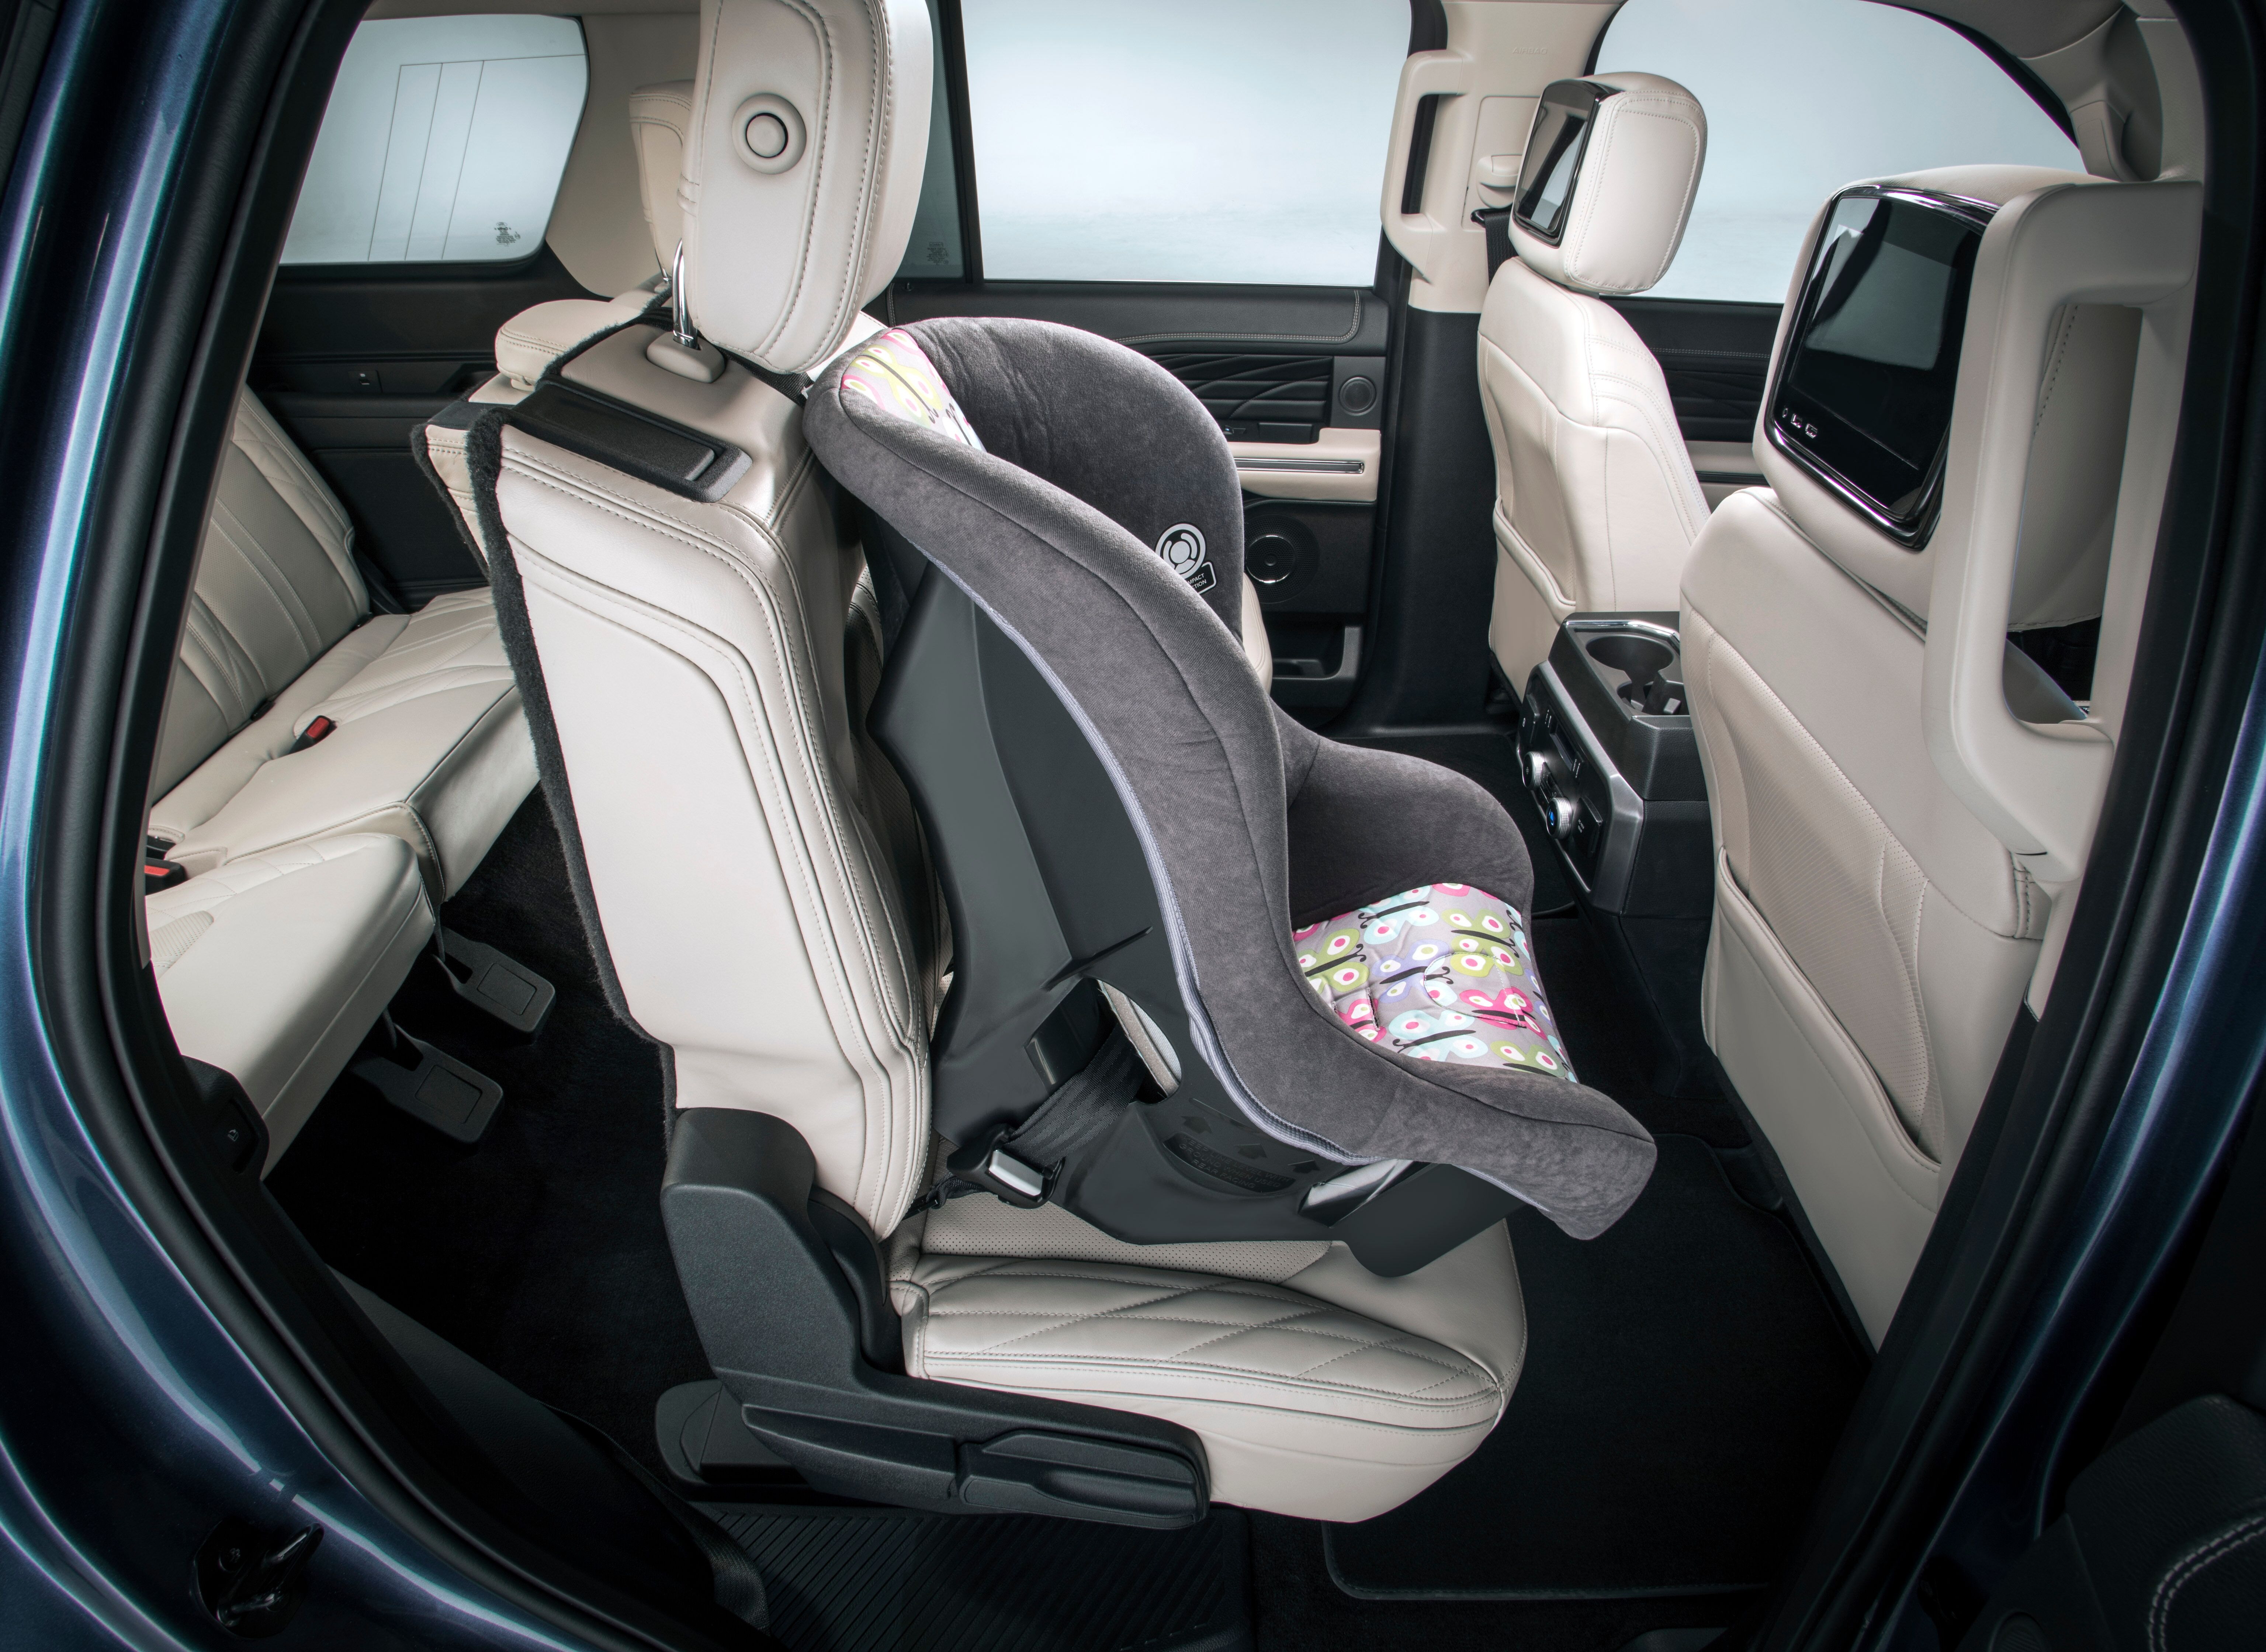 Ford Expedition Car Seat The Gentlemen S Standard